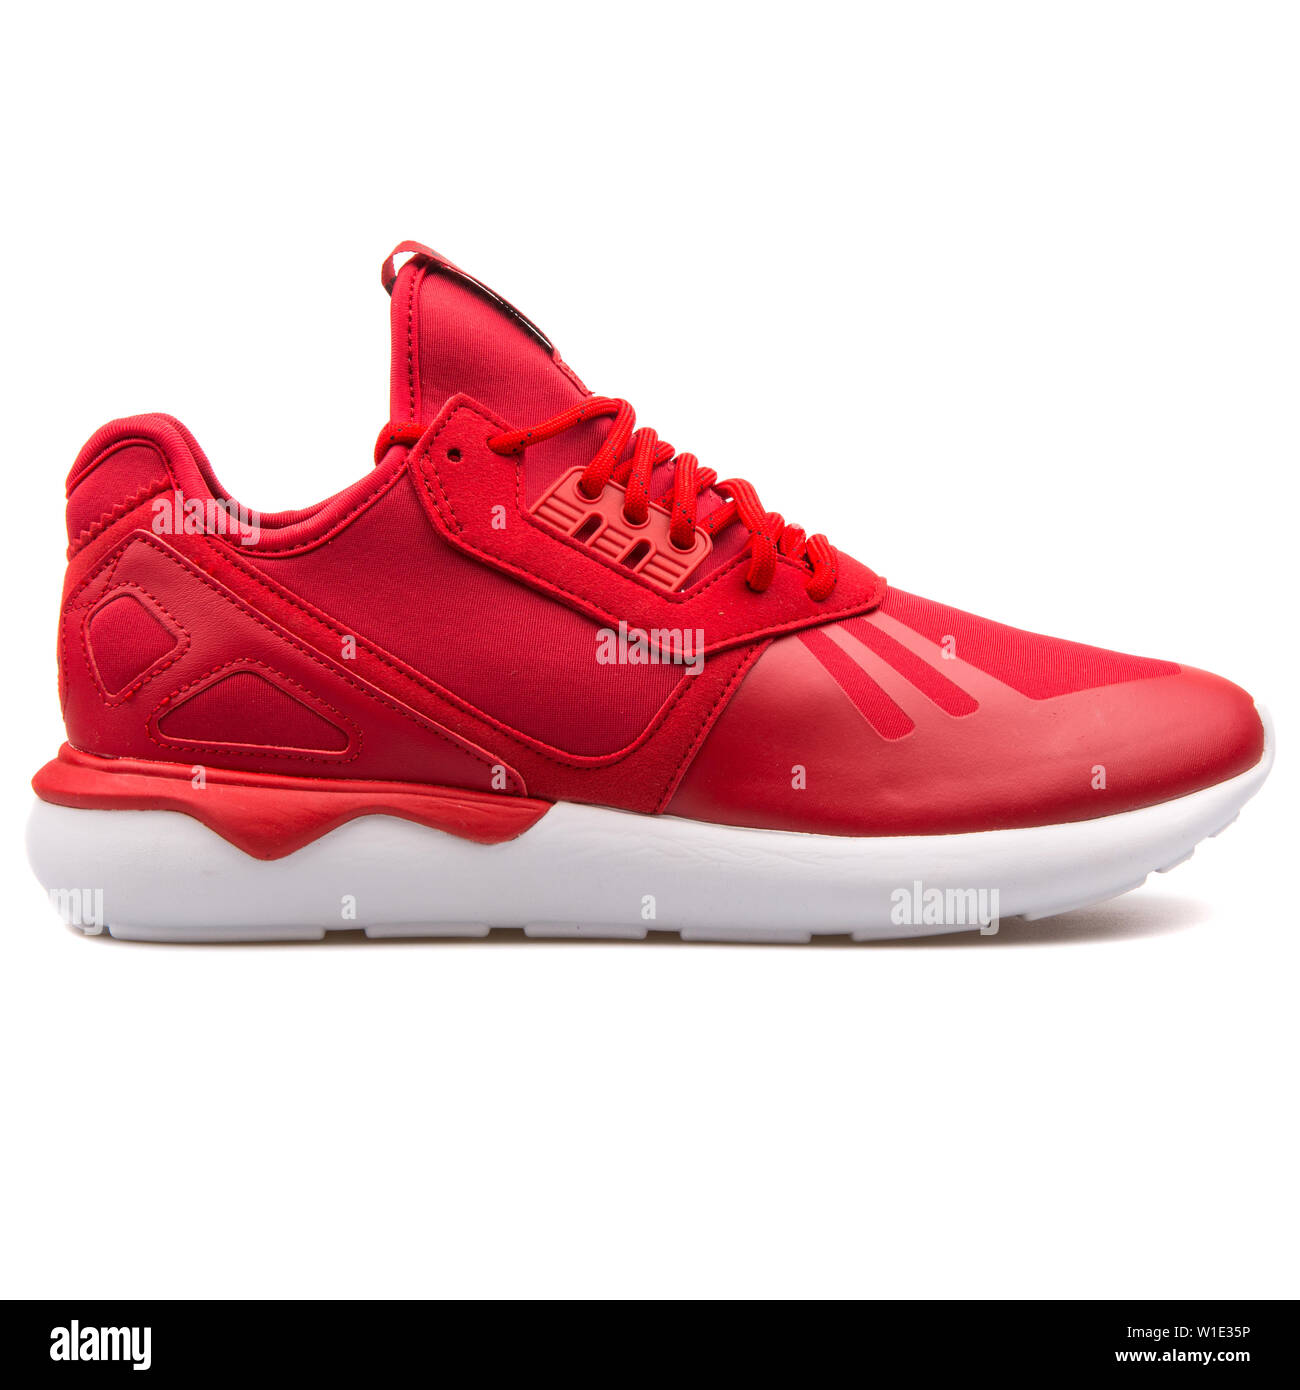 VIENNA, AUSTRIA - AUGUST 25, 2017: Adidas Tubular Runner red and white sneaker on white background. Stock Photo